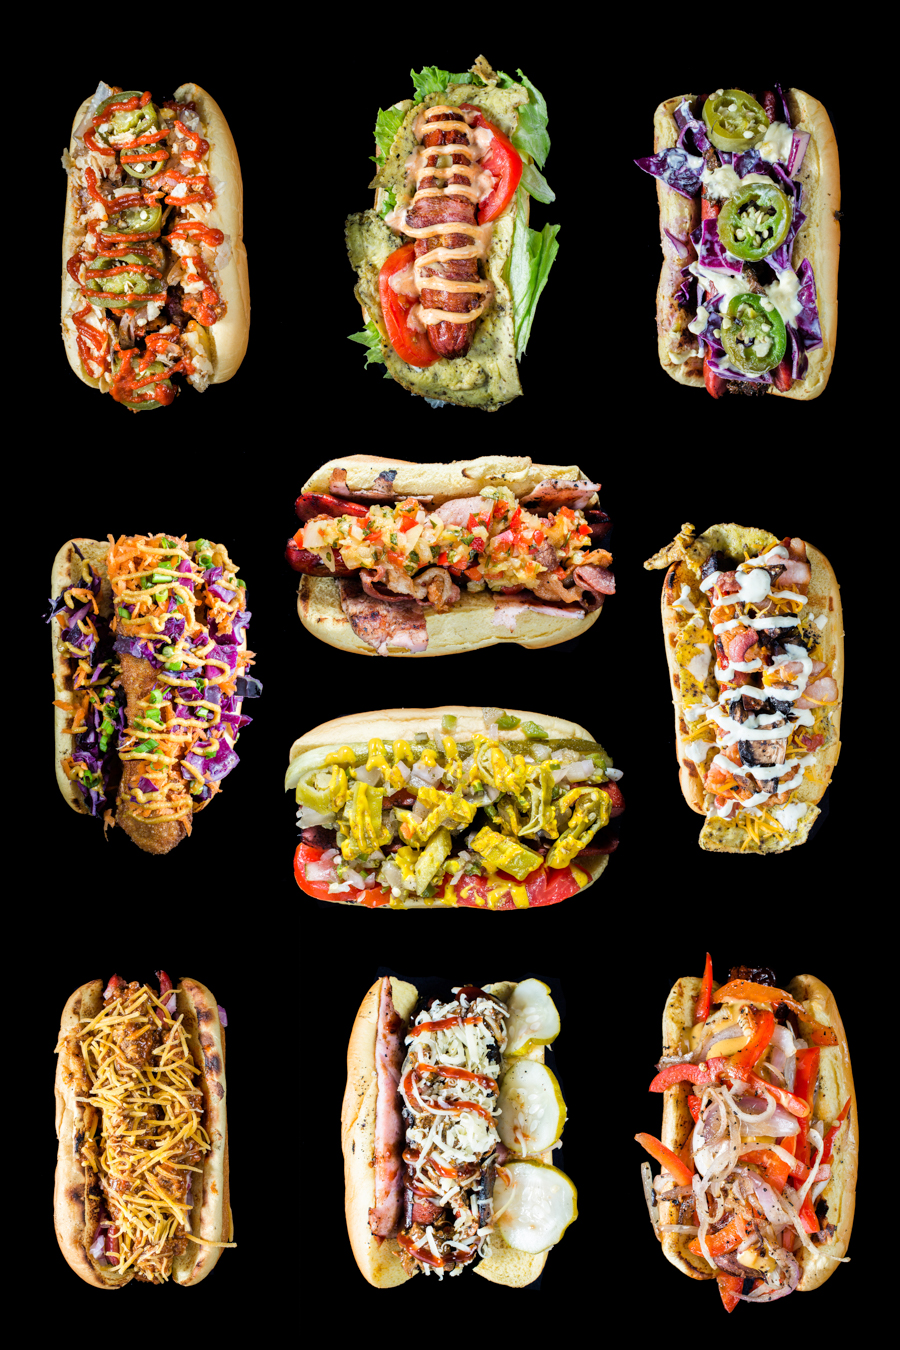 Justin Tsucalas – Culinary - Graine de Photographe Hot dog